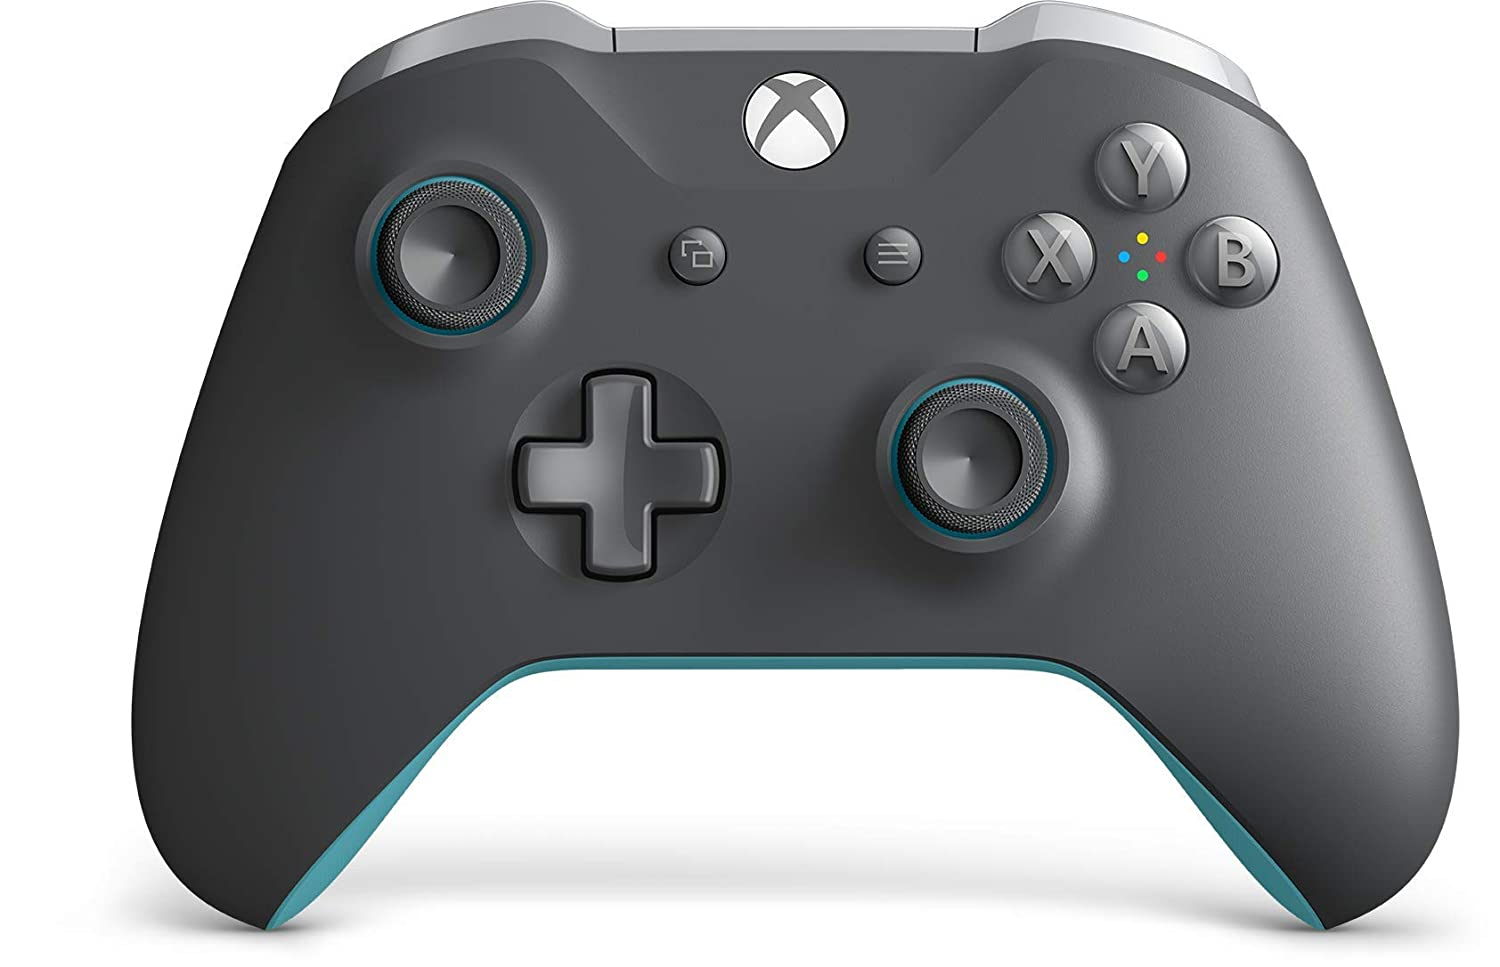 Control inalámbrico de Xbox one, color gris y azul